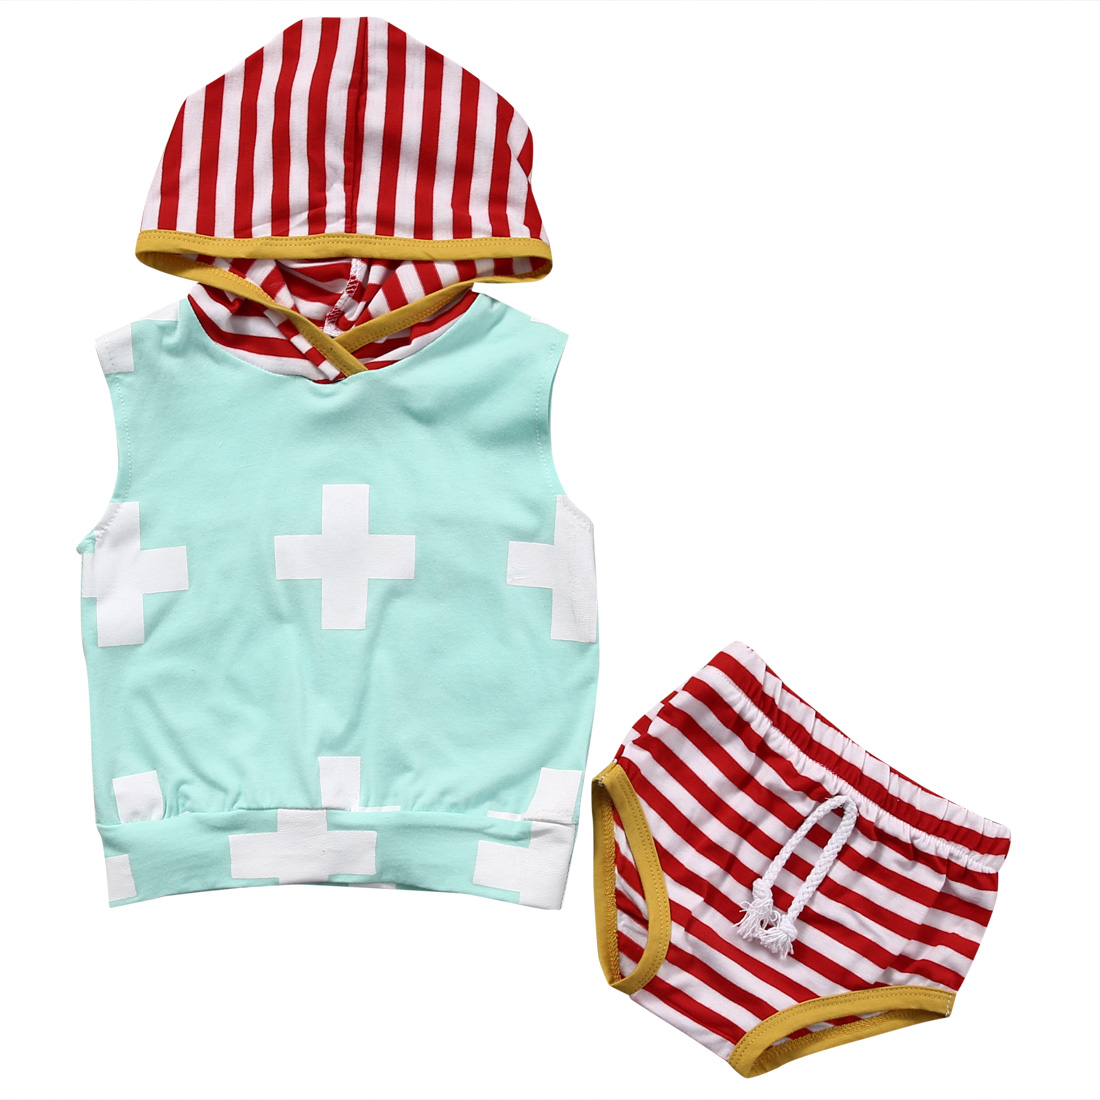 Newborn Toddler Kids Baby Boy Hoodies Tank Tops Shorts Pants Outfit Set Clothes Infant Kid Boys Clothing Children Kid Cotton baby fox print clothes set newborn baby boy girl long sleeve t shirt tops pants 2017 new hot fall bebes outfit kids clothing set